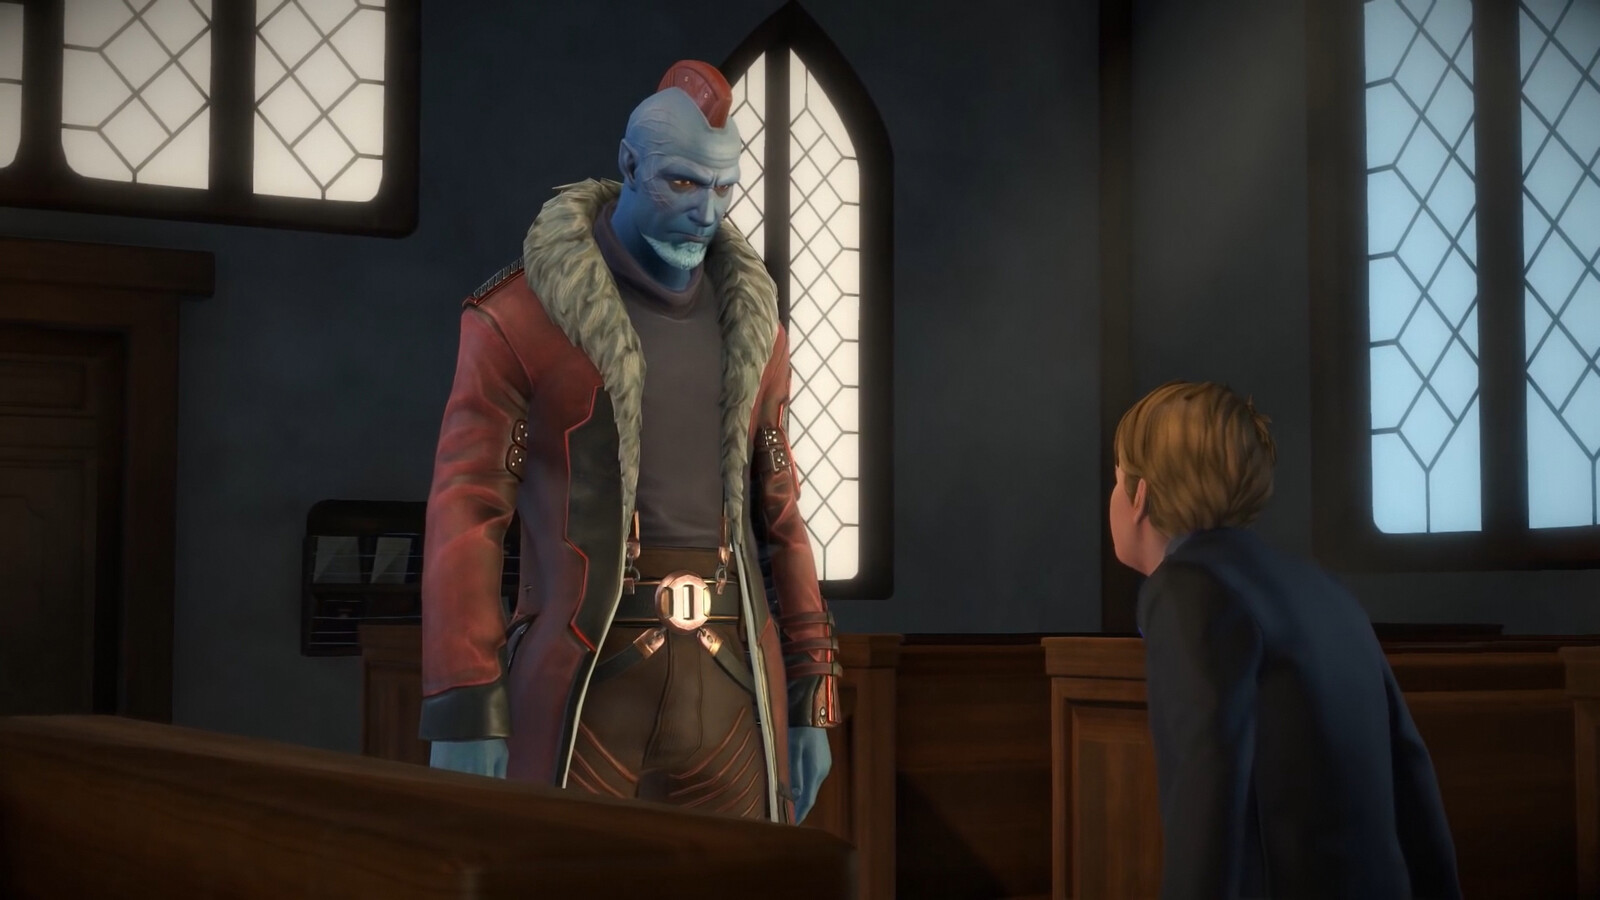 Yondu Udonta (Guardians of the Galaxy: The Telltale Series)